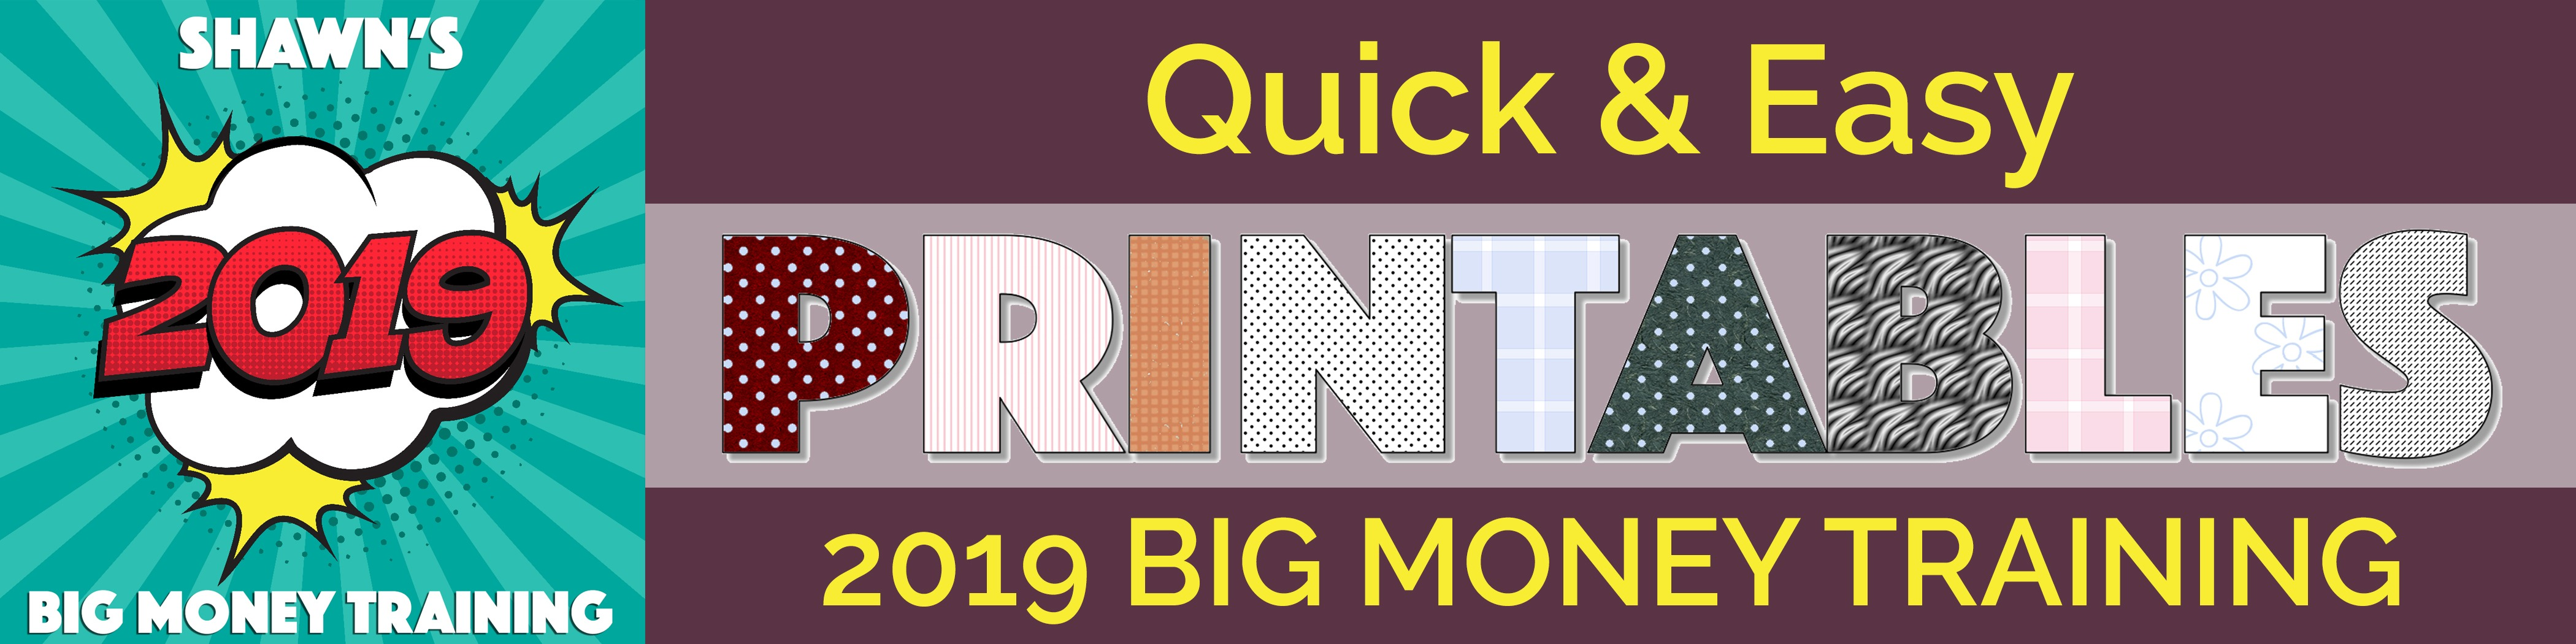 Quick & Easy Printables 2019 BIG MONEY TRAINING Presented by Shawn Hansen